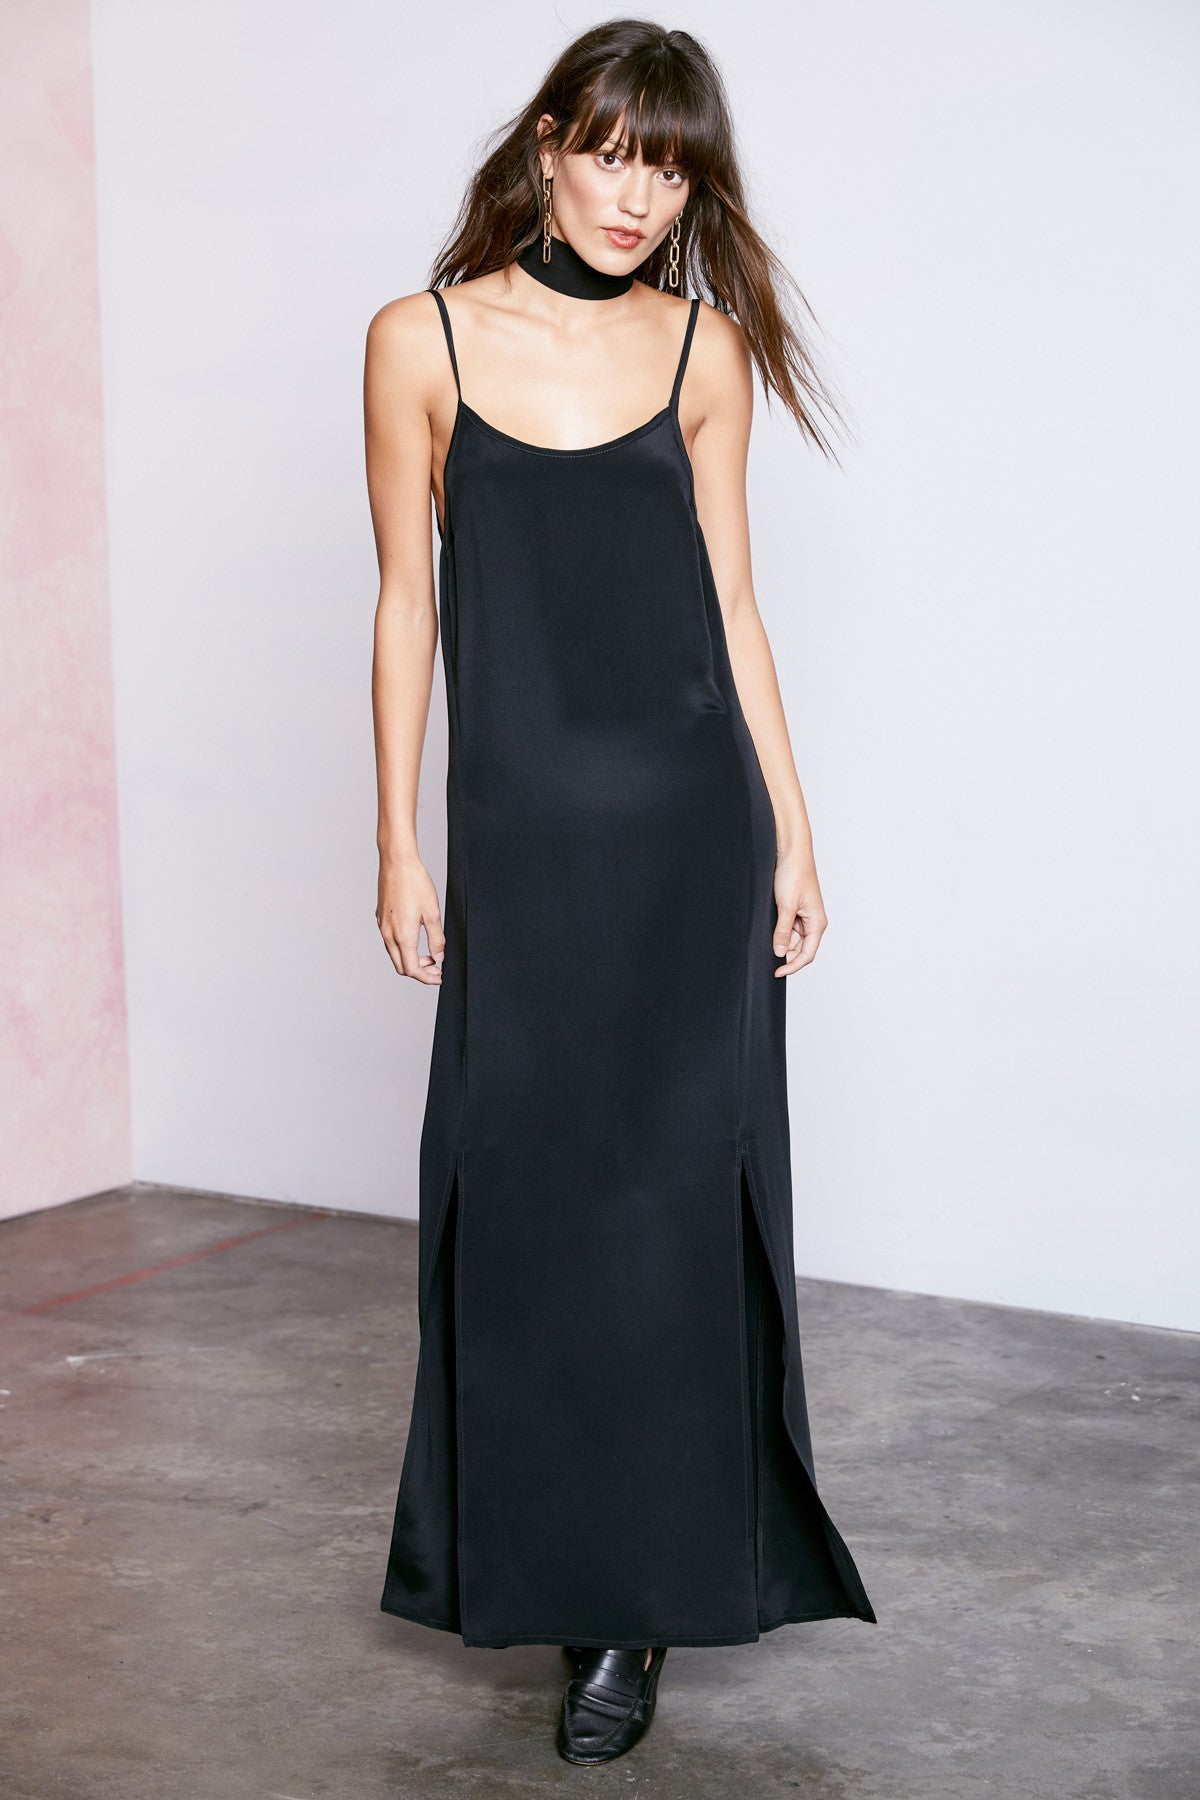 10th Anniversary Silk Dress - Black